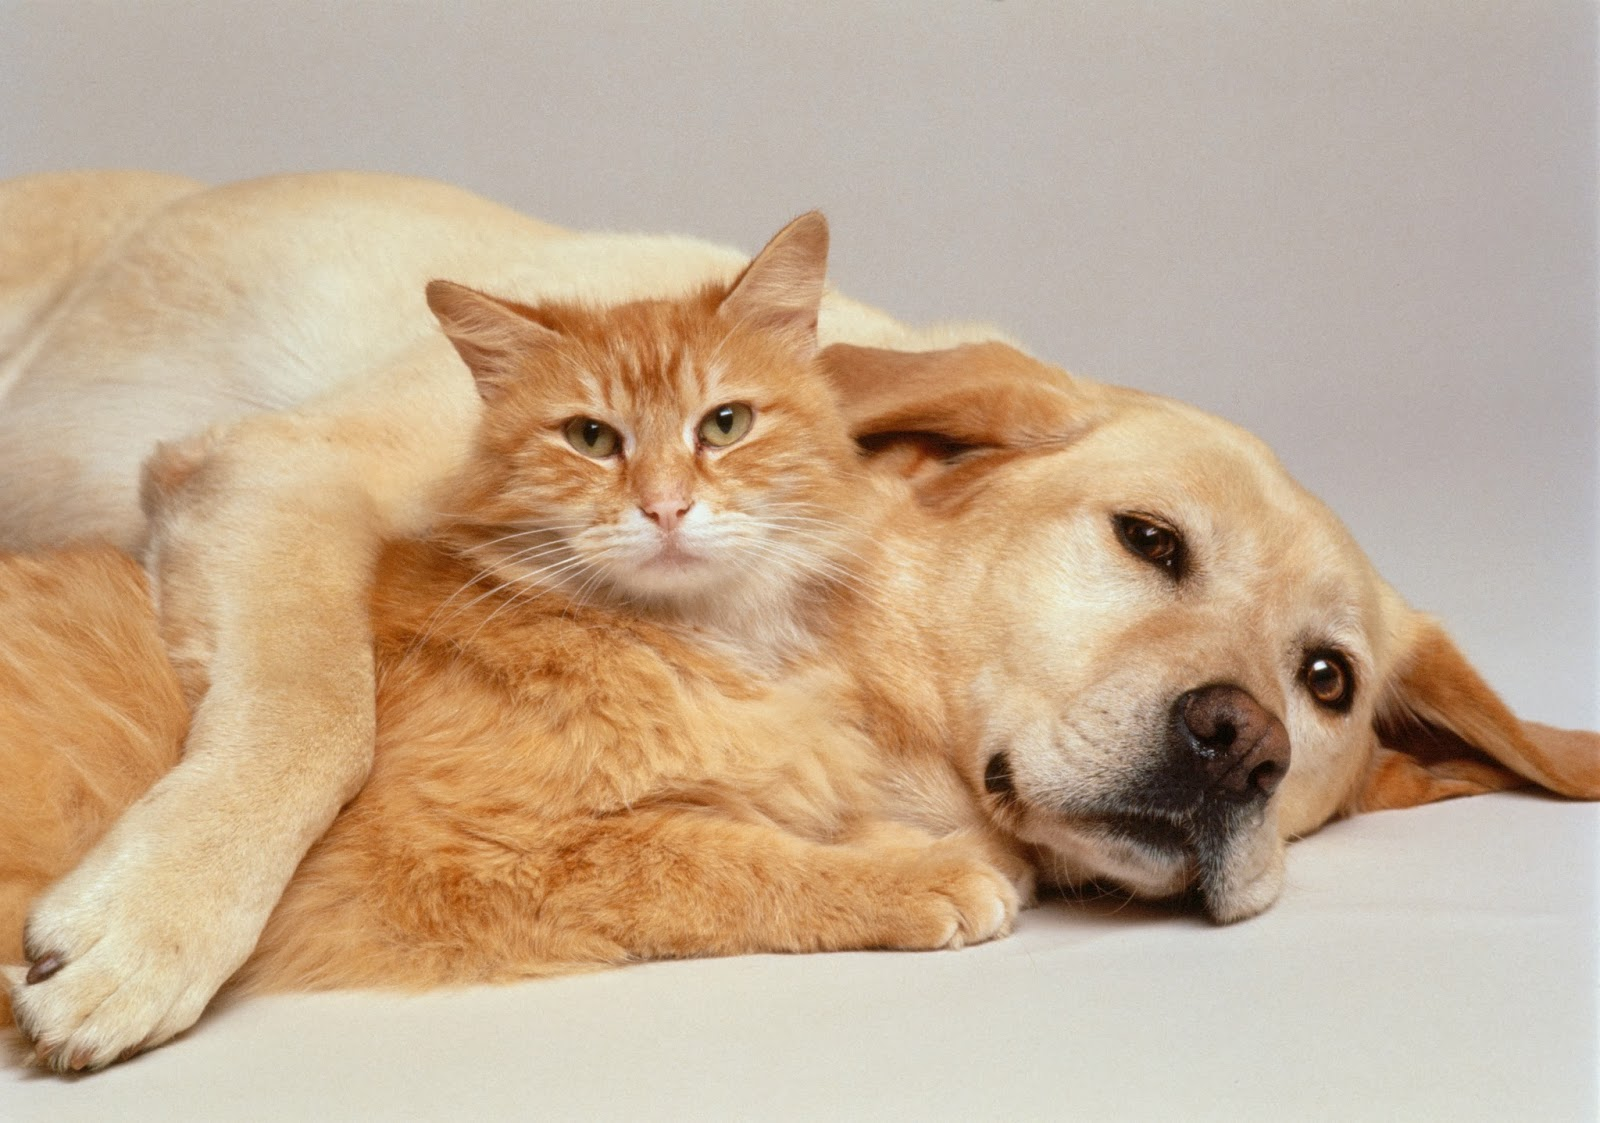 Animals Zoo Park Cute Cat With Cute Dog Wallpapers 4